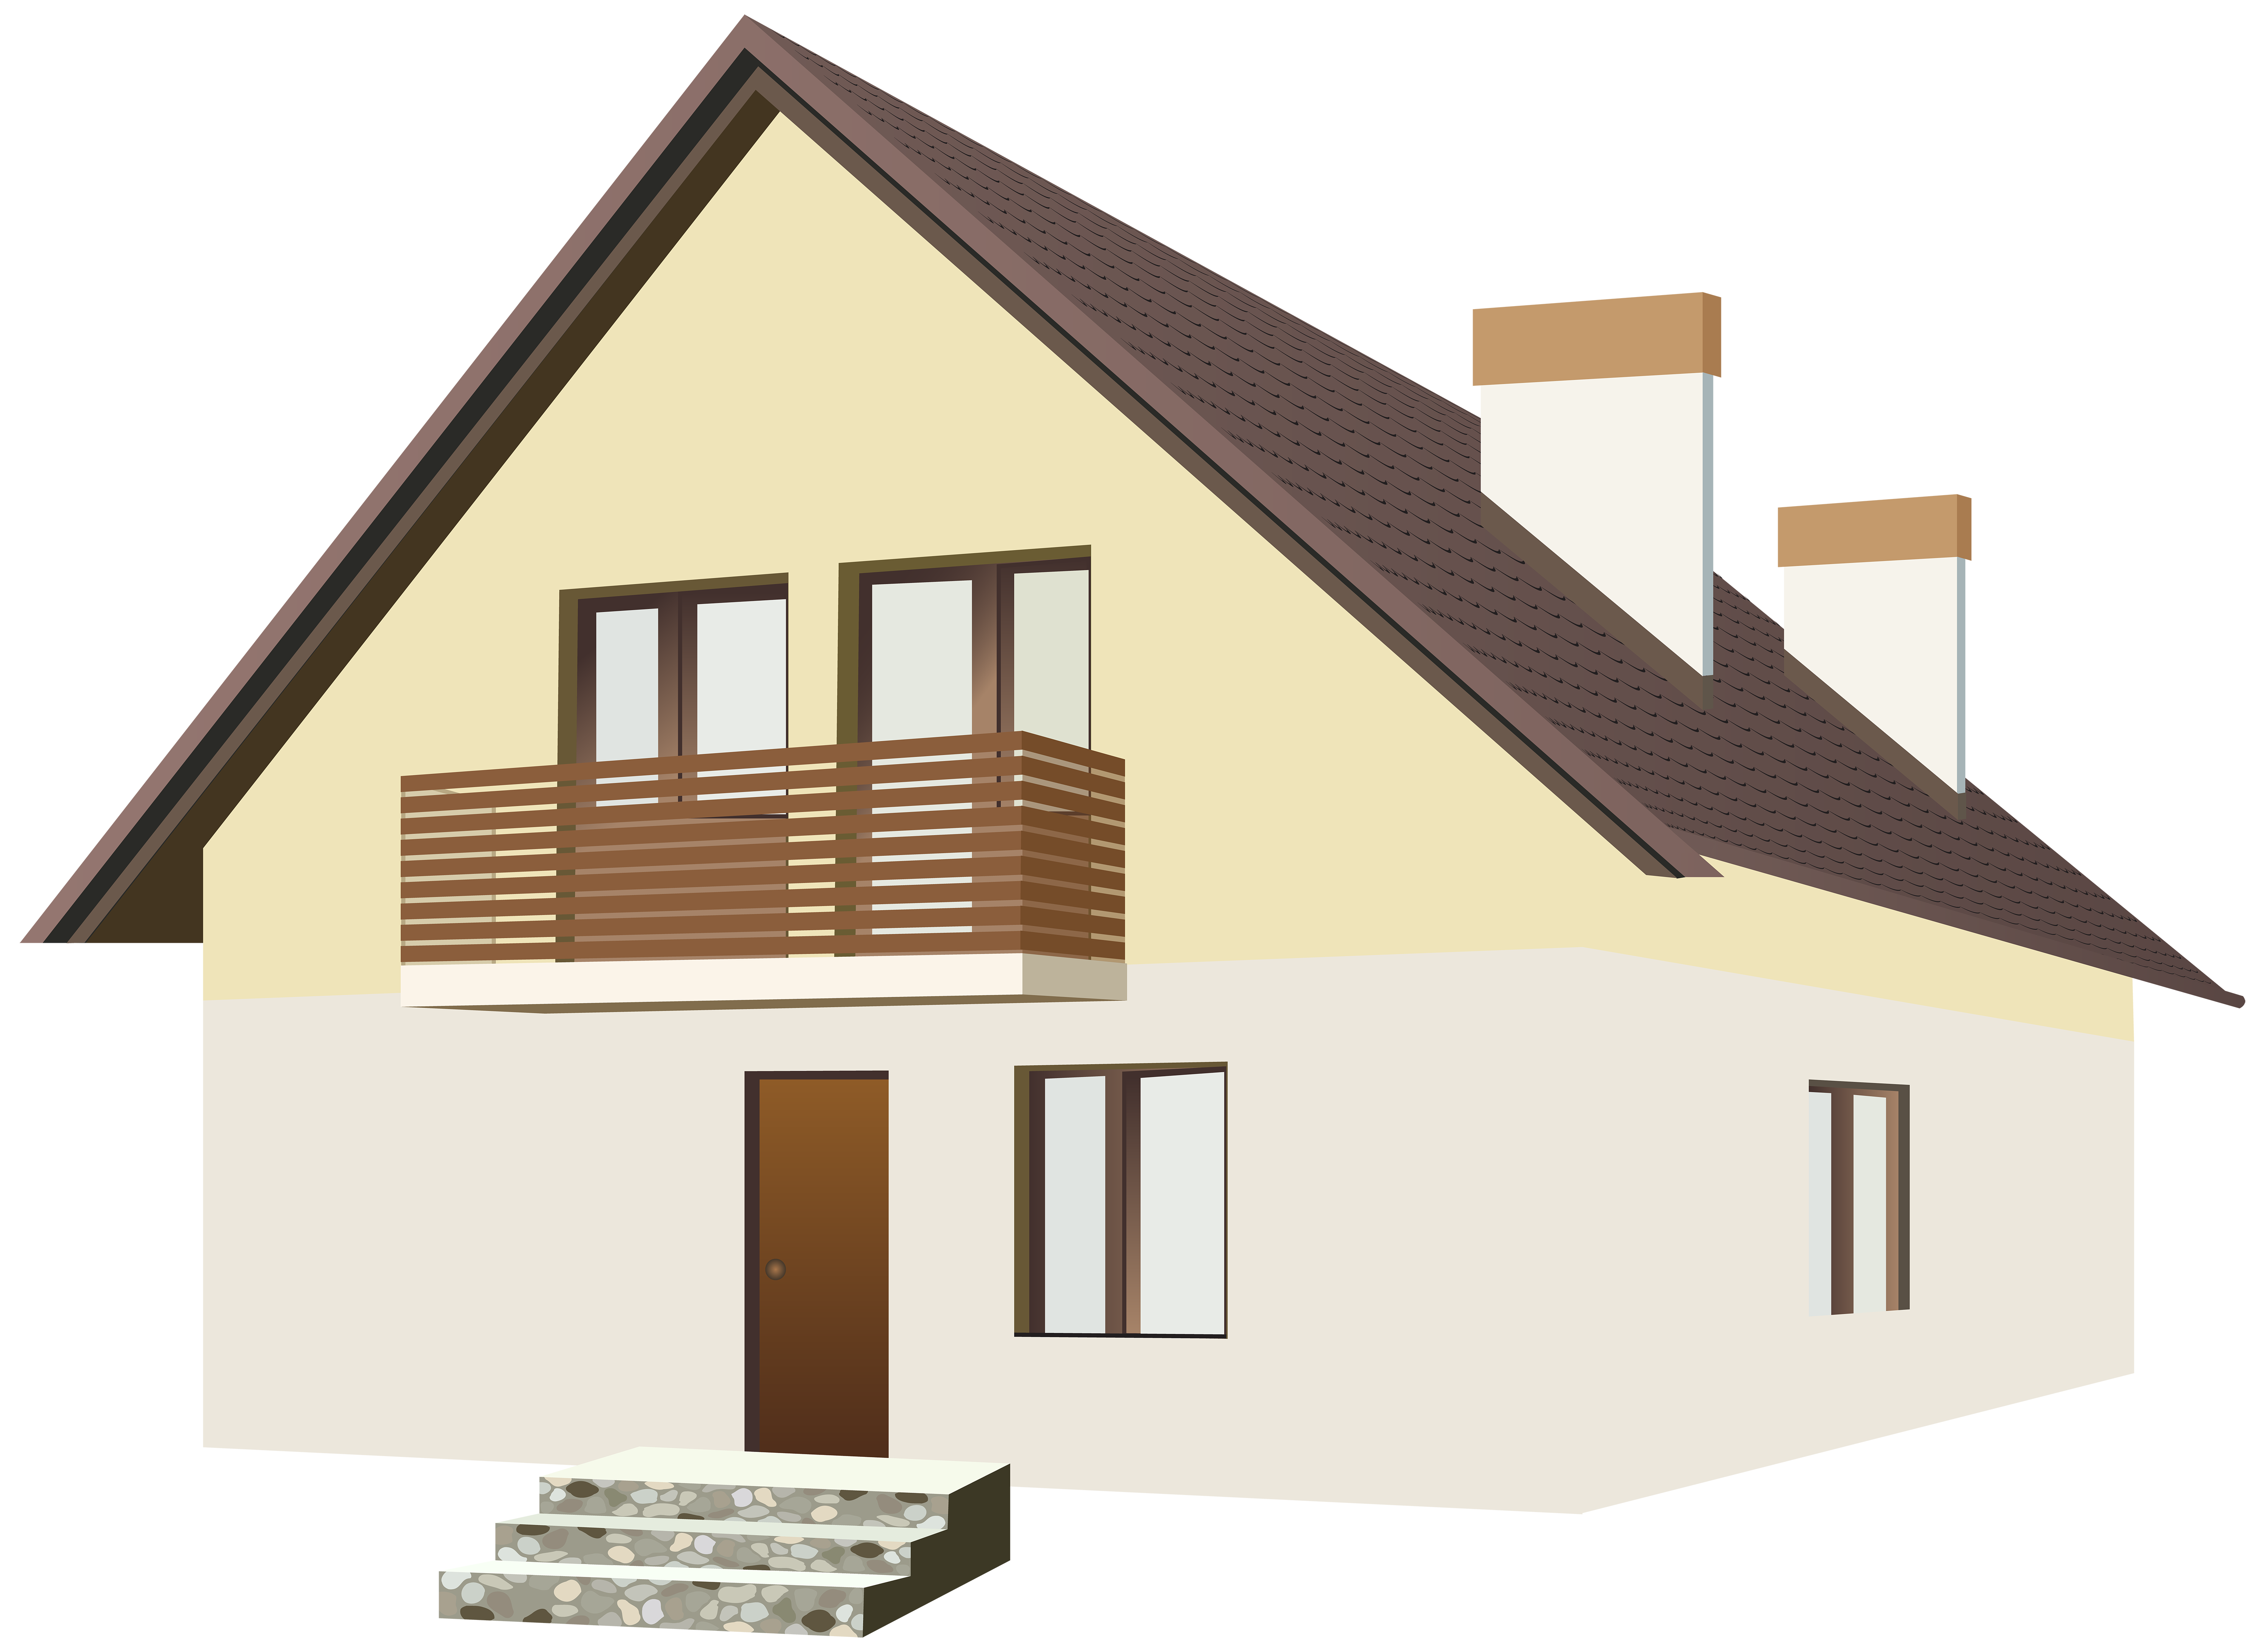 House png clip art. Cottage clipart new home